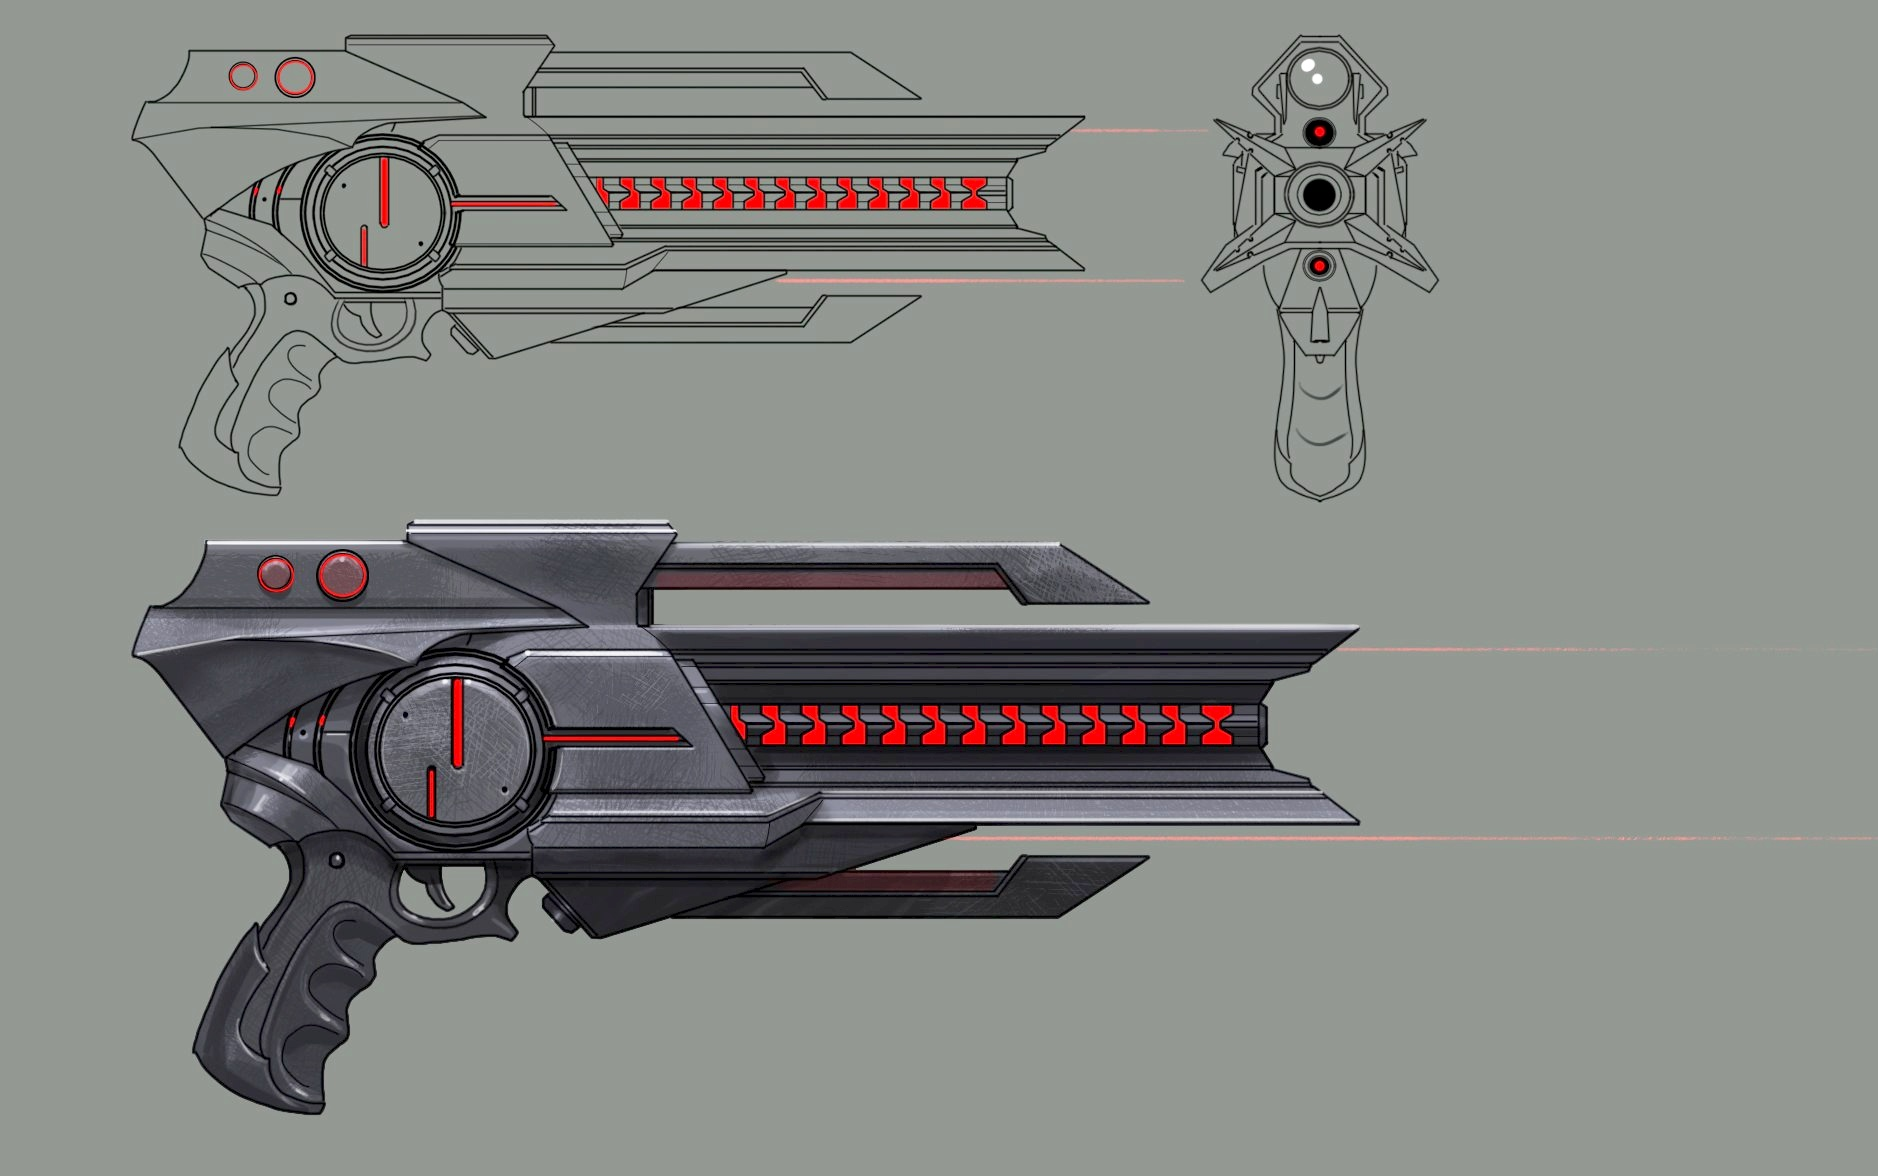 Dominion Pistol Concept Art (Final Version)